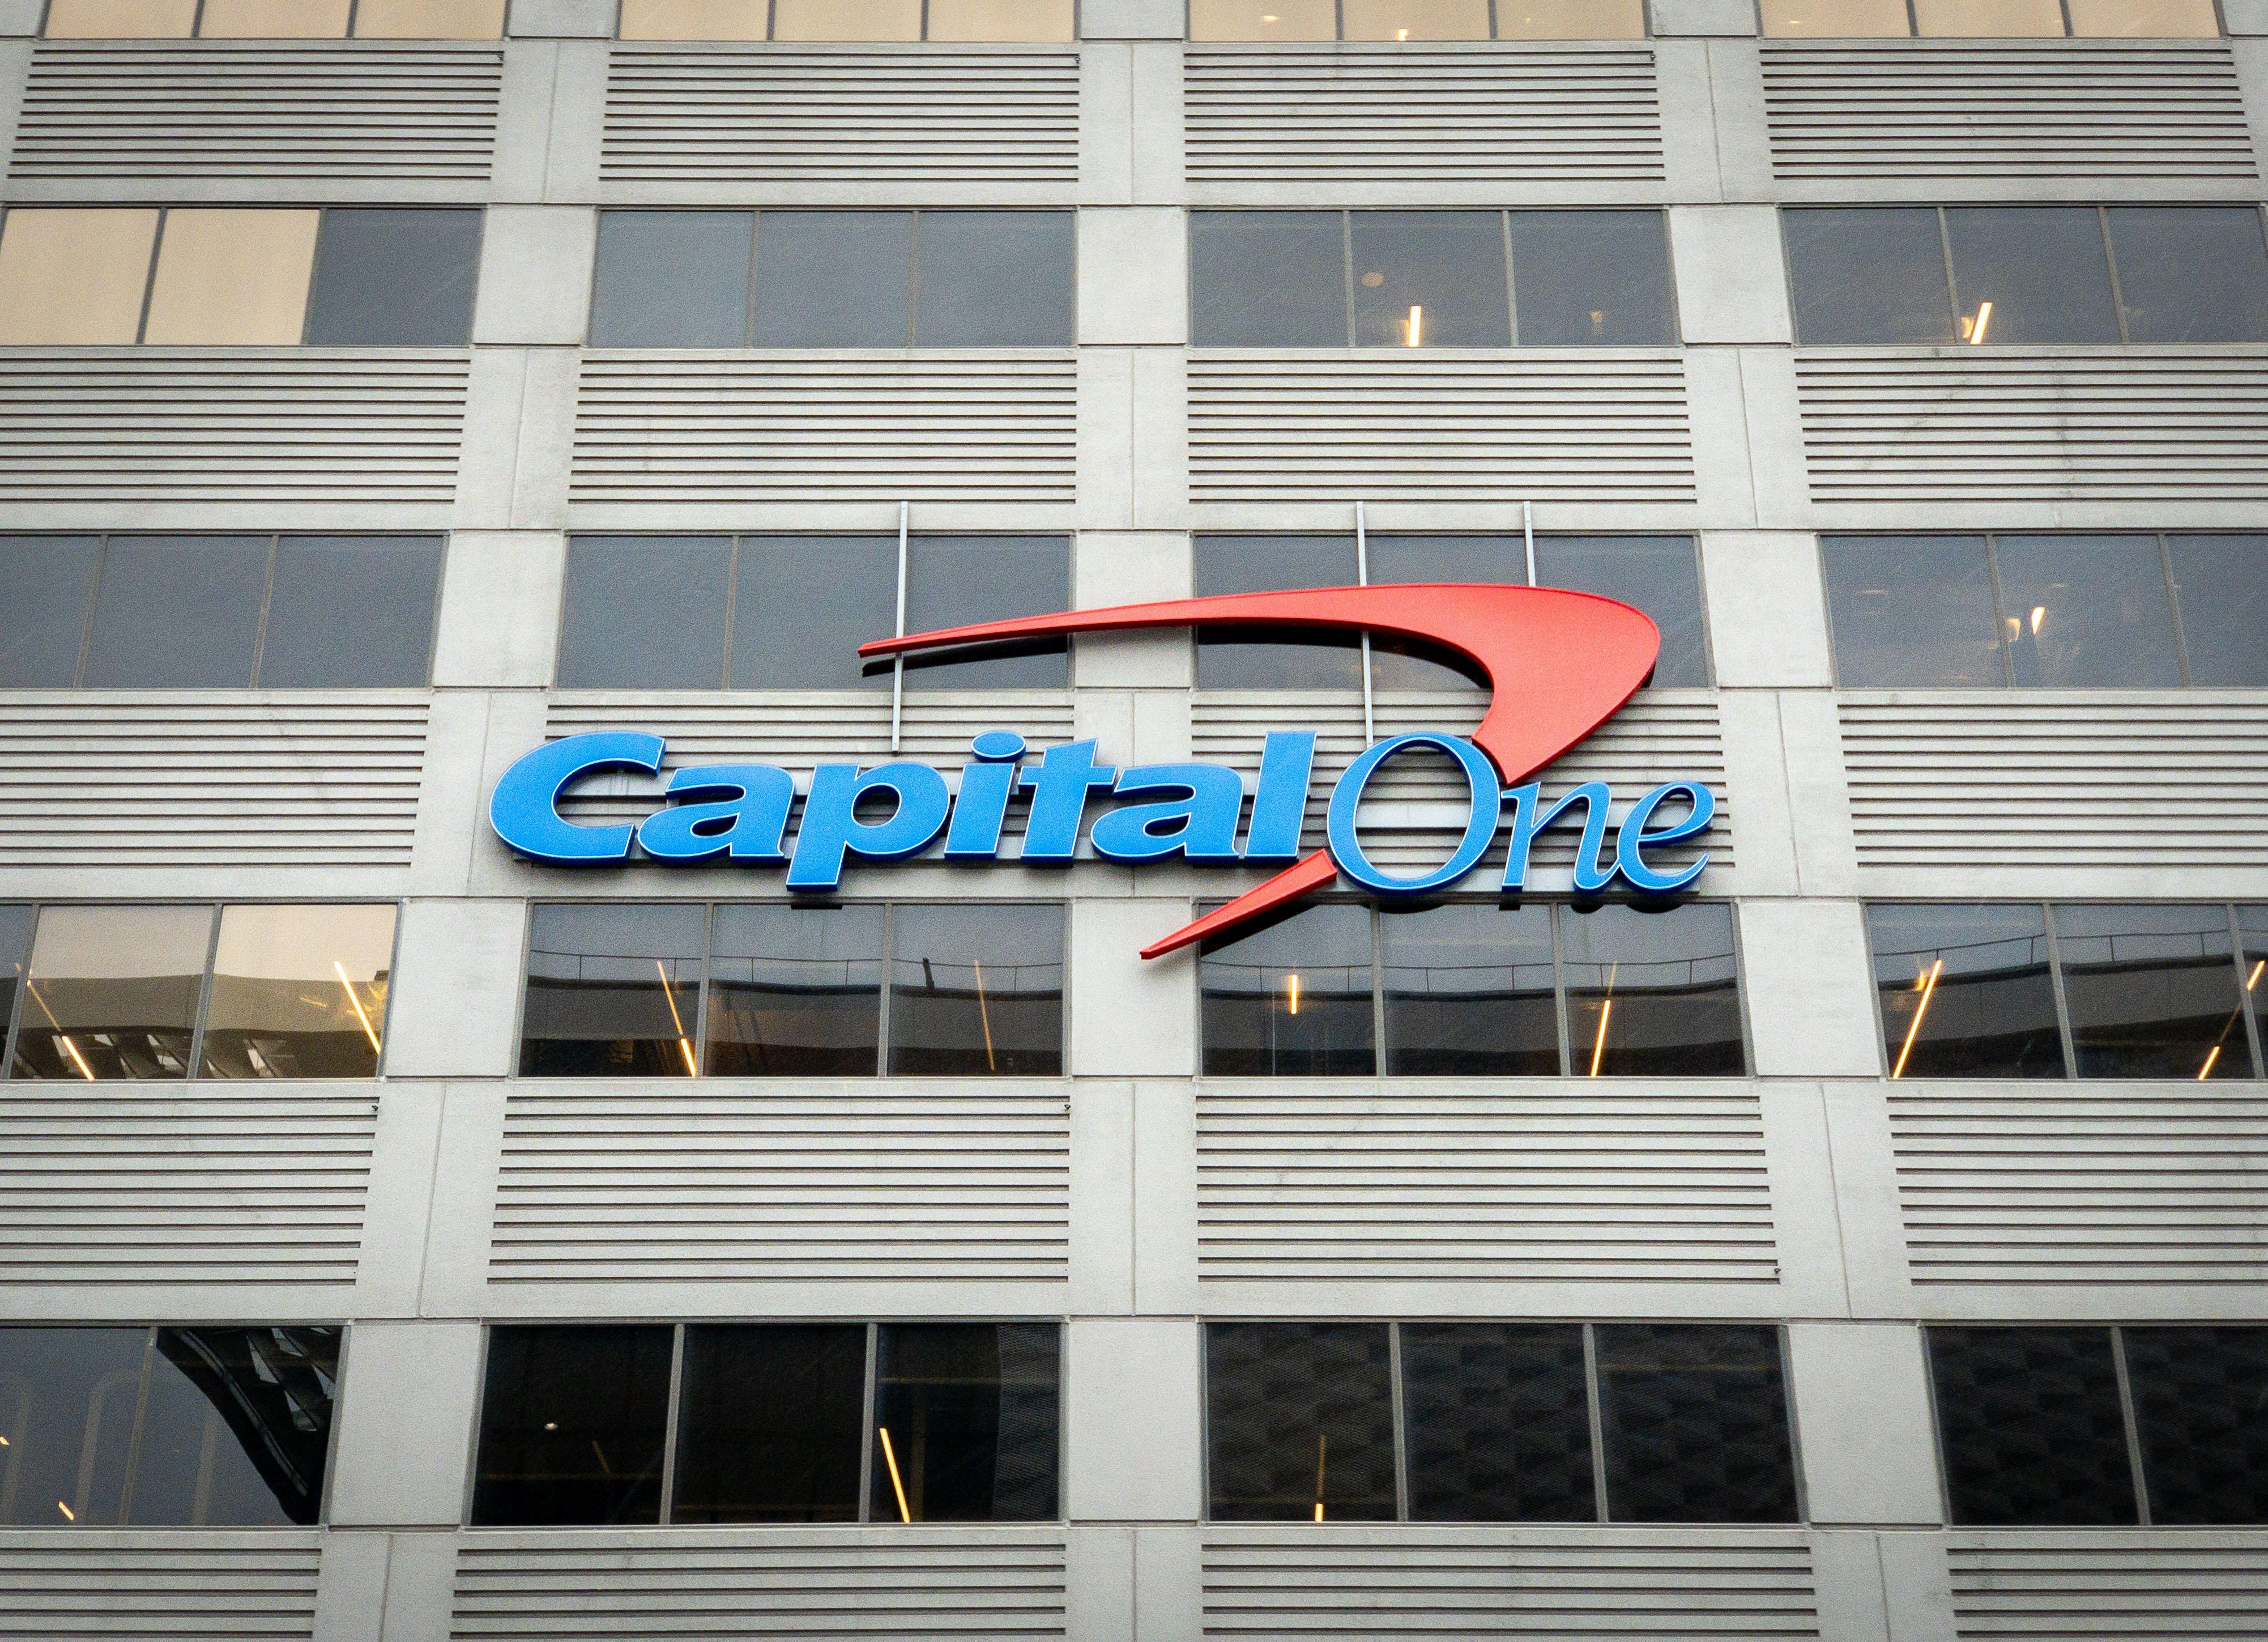 Capital one data breach what you can do now following